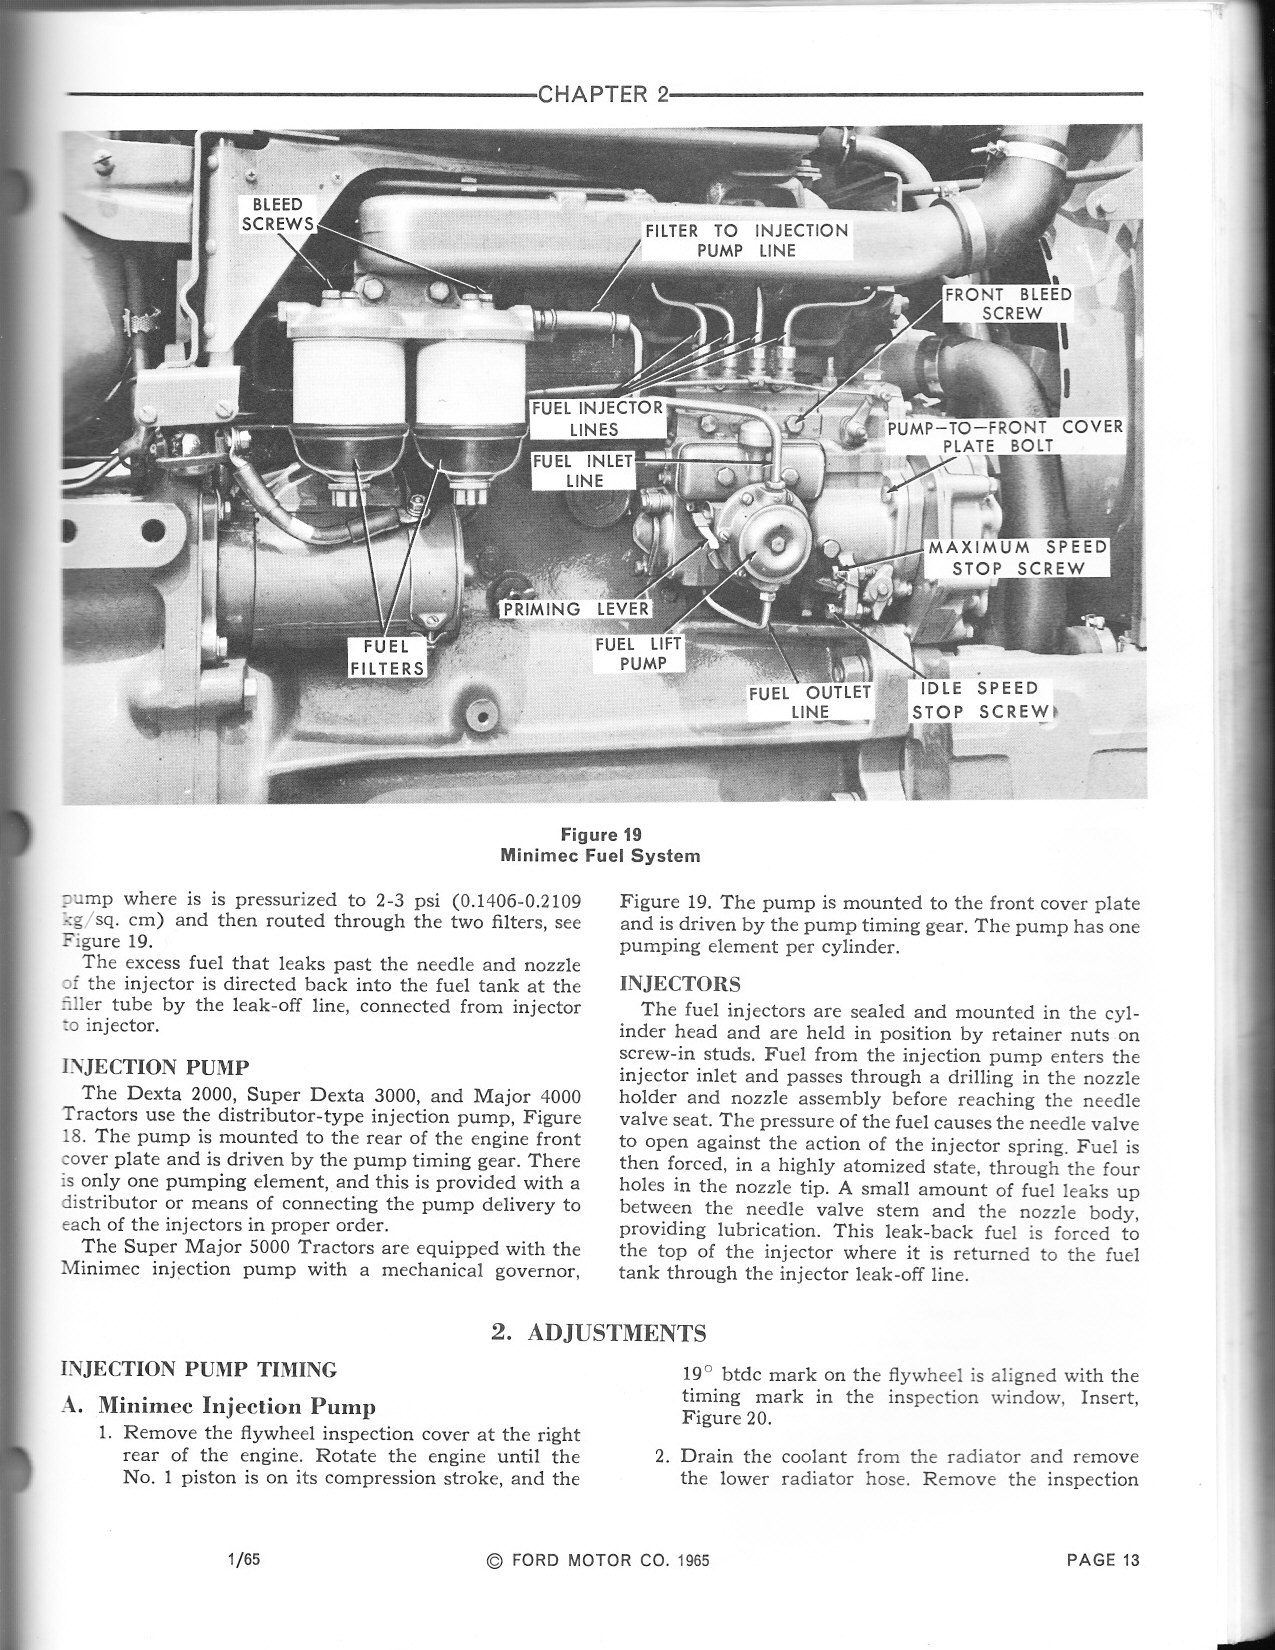 Ford 3000 Tractor Fuel System : Bleed fuel lines ford tractor